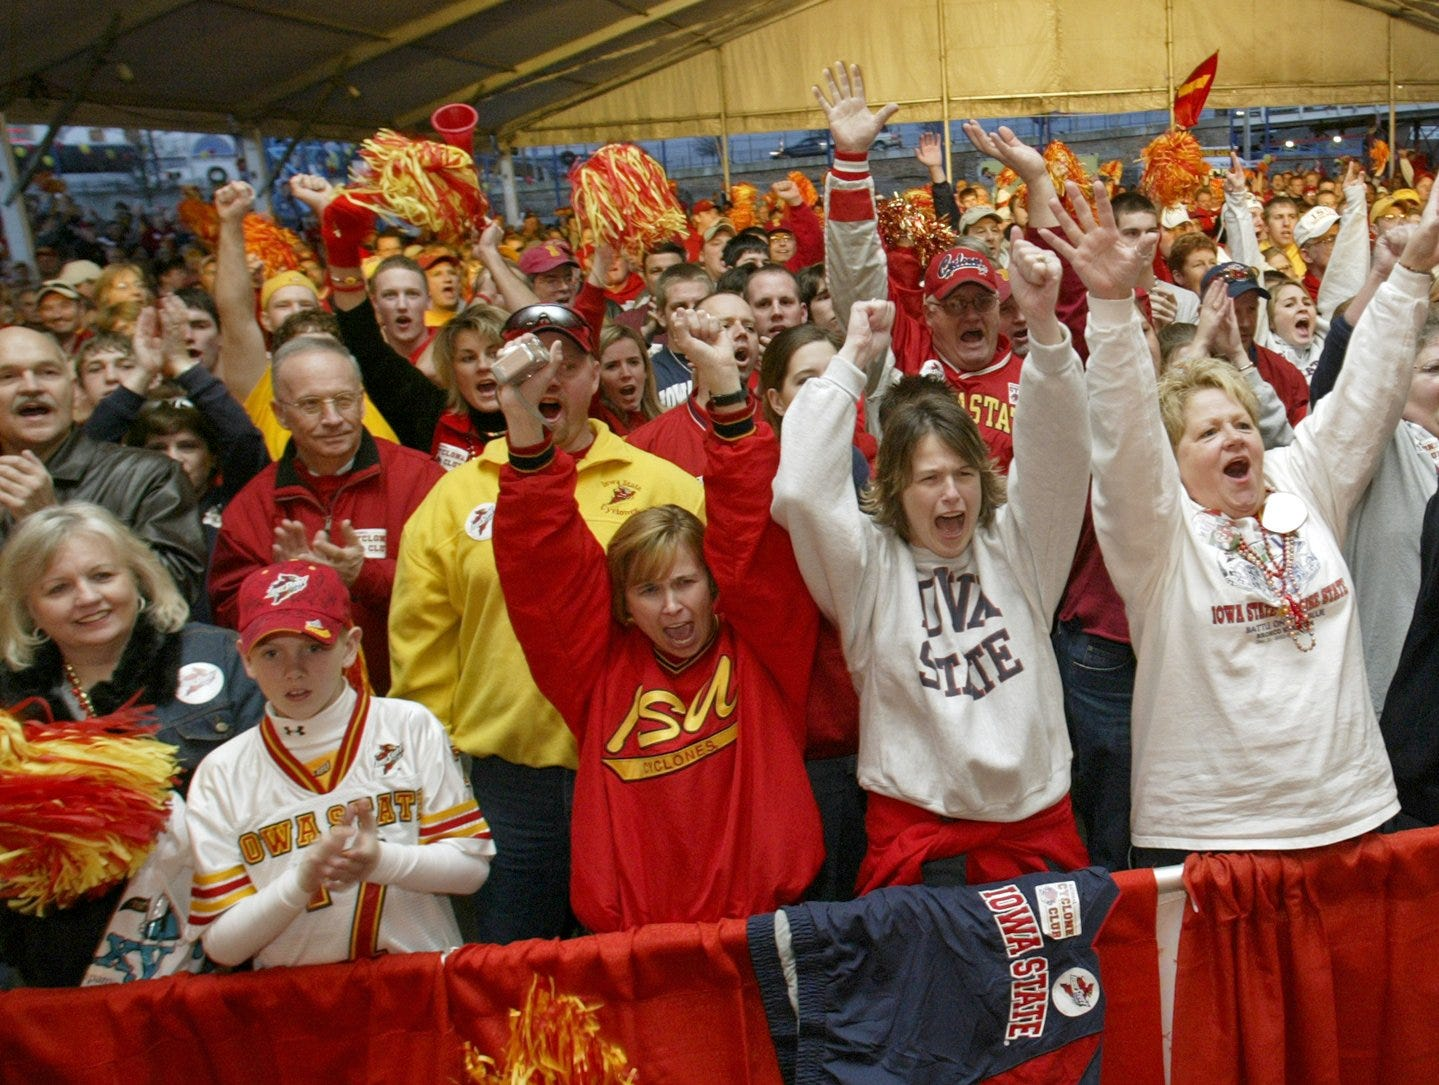 Iowa State fans cheer as Cyclones football players and coaches arrive at a pep rally in downtown Shreveport before the 2004 Independence Bowl.